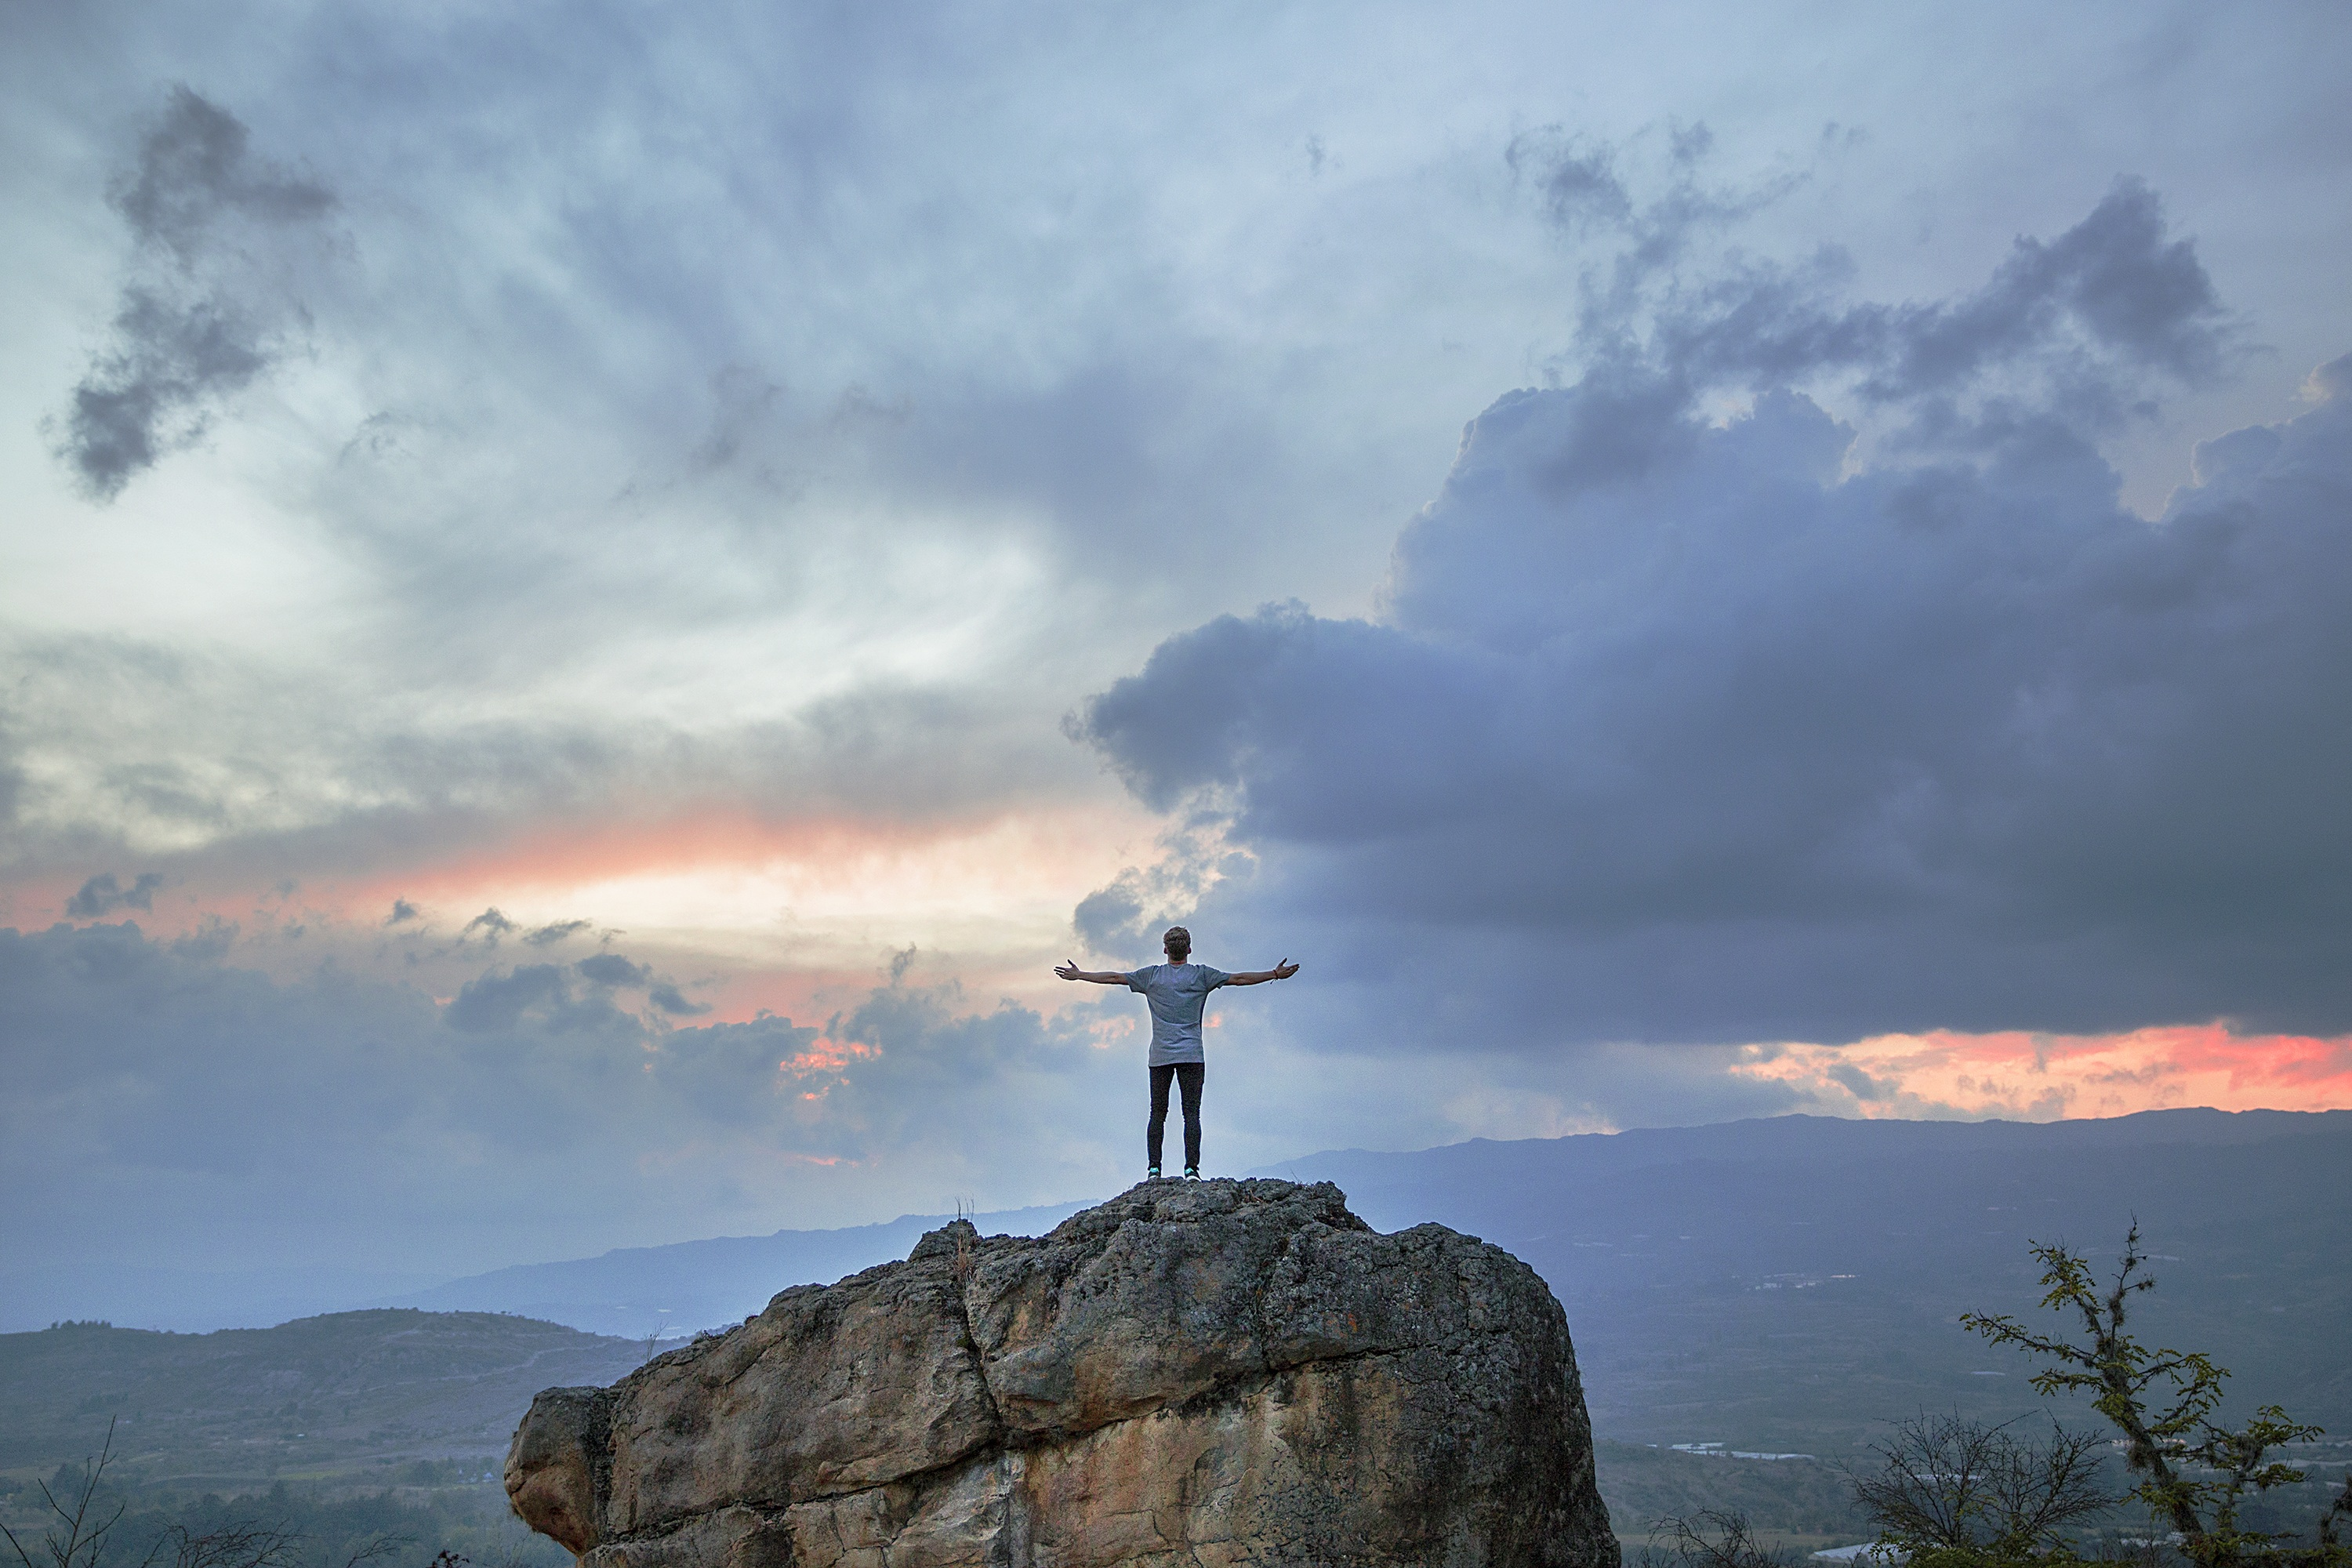 Man On The Cliff, Activity, Cliff, Hill, Human, HQ Photo